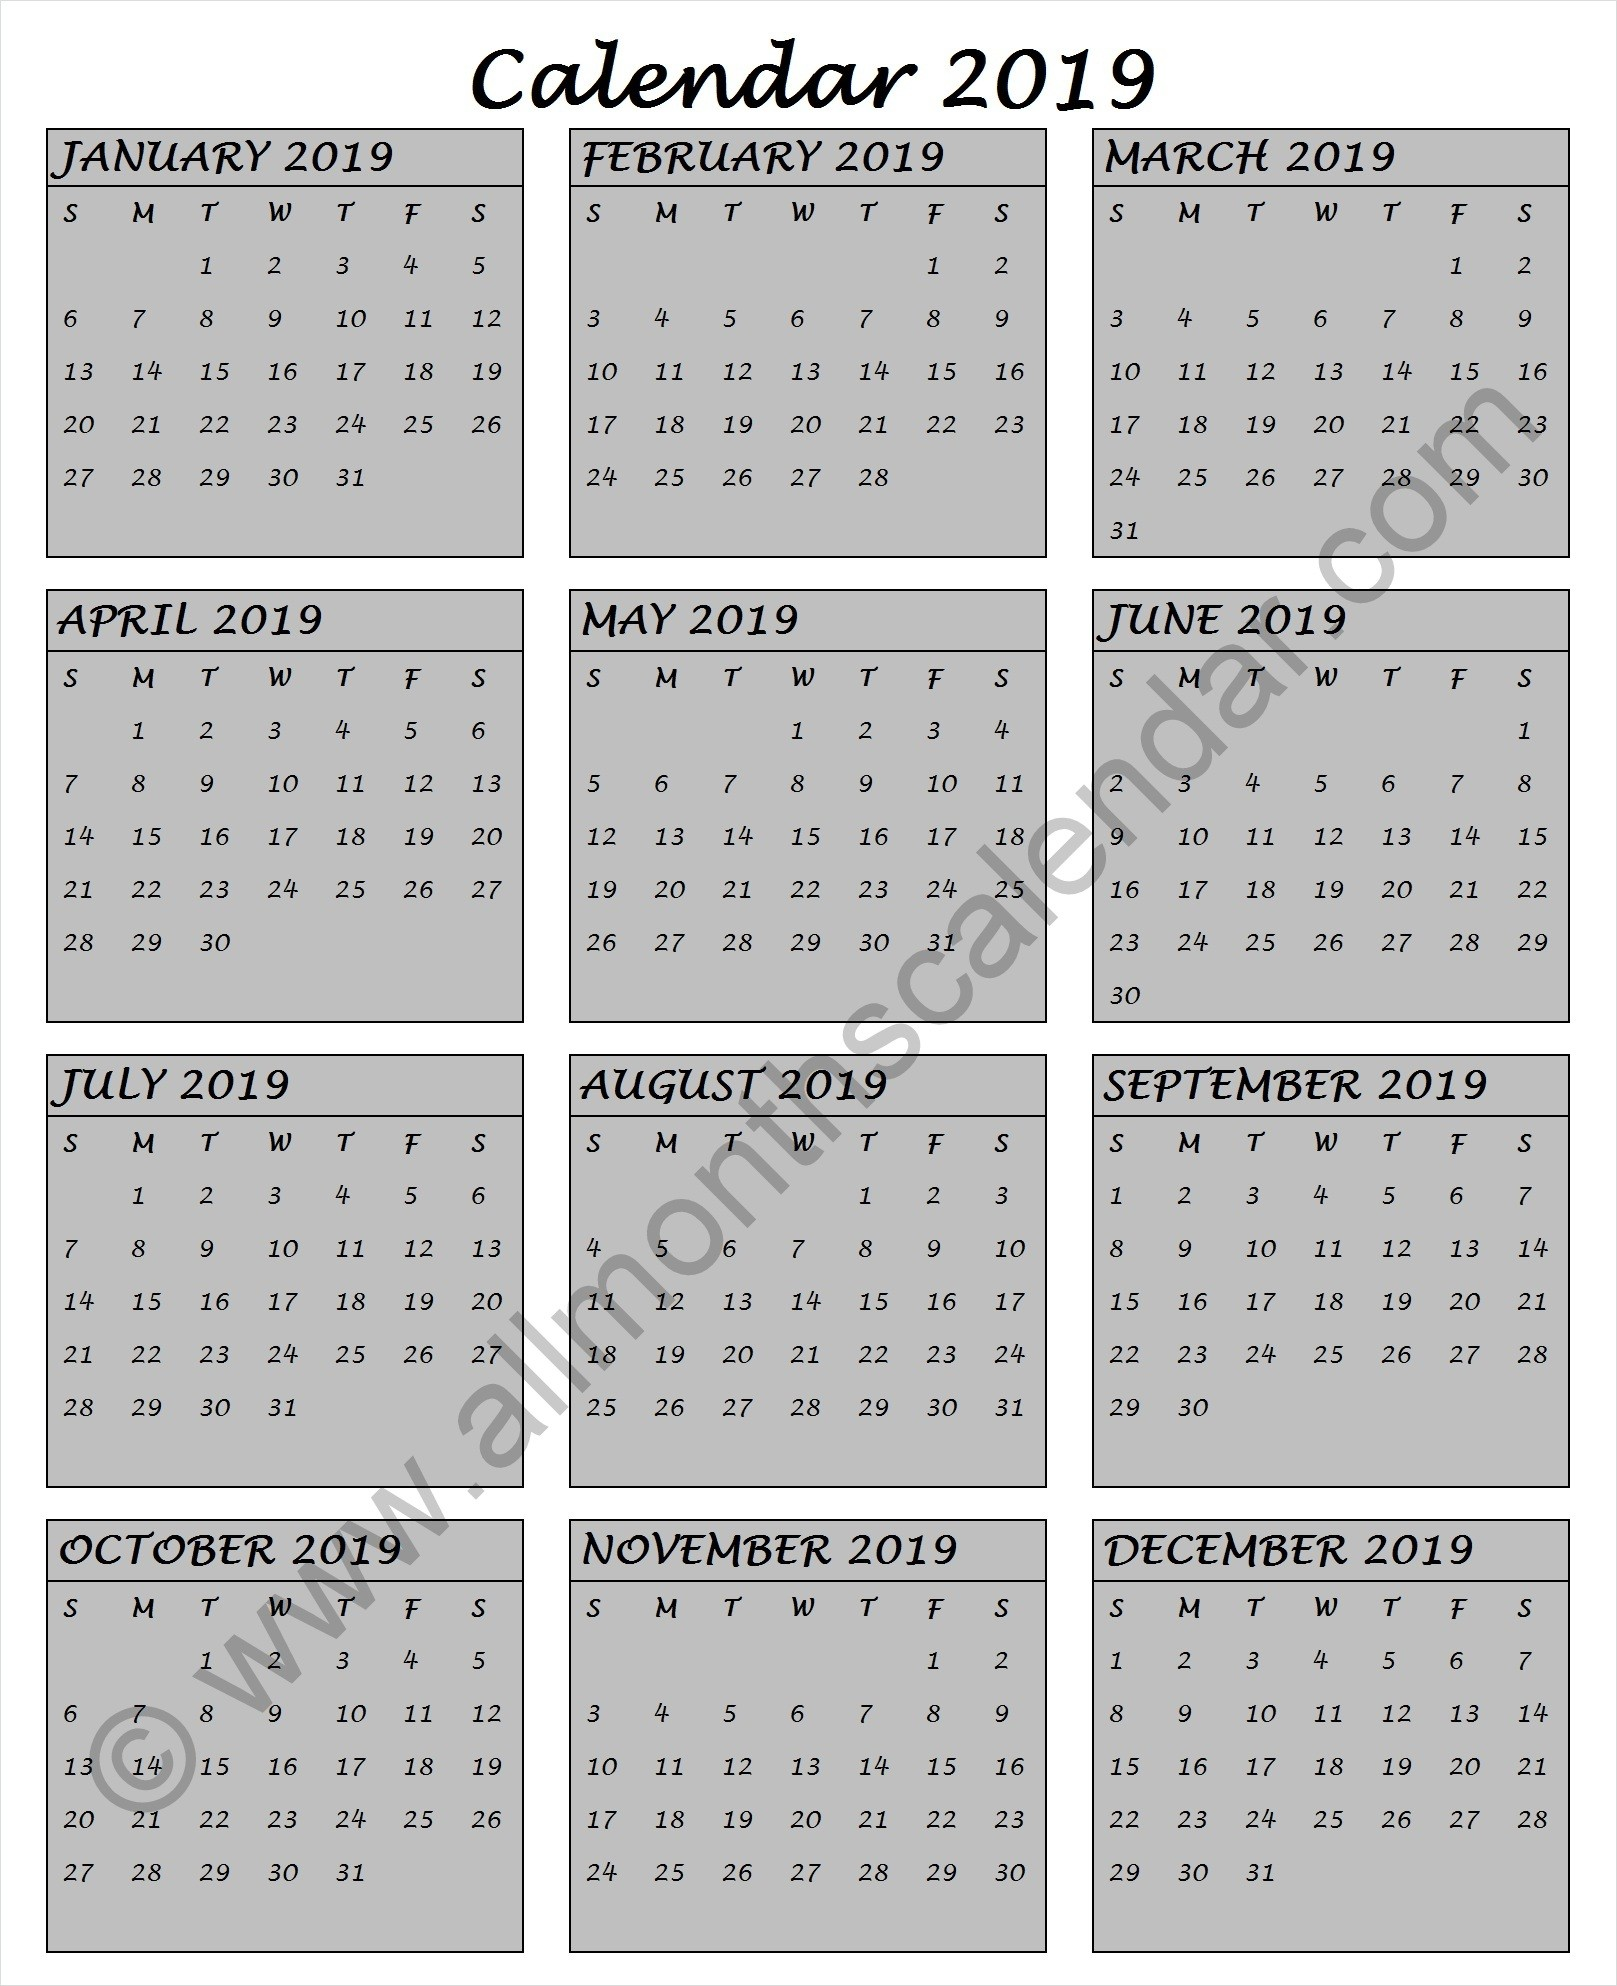 March 2019 Calendar Uk Printable Más Caliente August 2019 Calendar Excel Of March 2019 Calendar Uk Printable Más Reciente 2018 Editorial Calendar Templates Sports Team Template Blog Sneak P